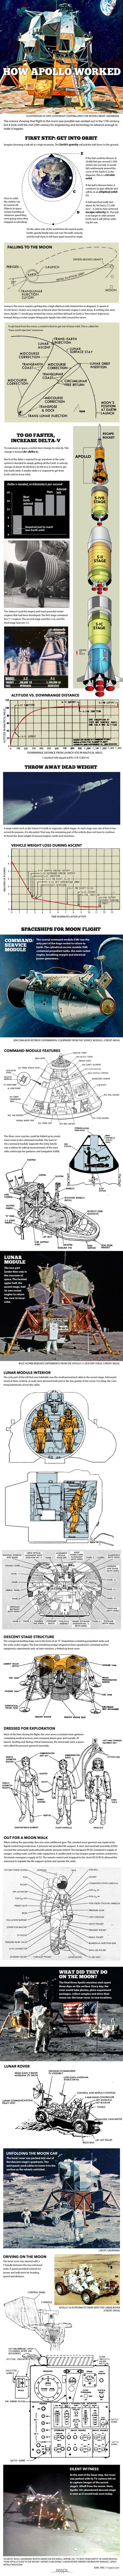 How Apollo Worked | The science showing that flight to the moon was possible was worked out in the 17th century, but it took until the mid-20th century for engineering and technology to advance enough to make it happen.